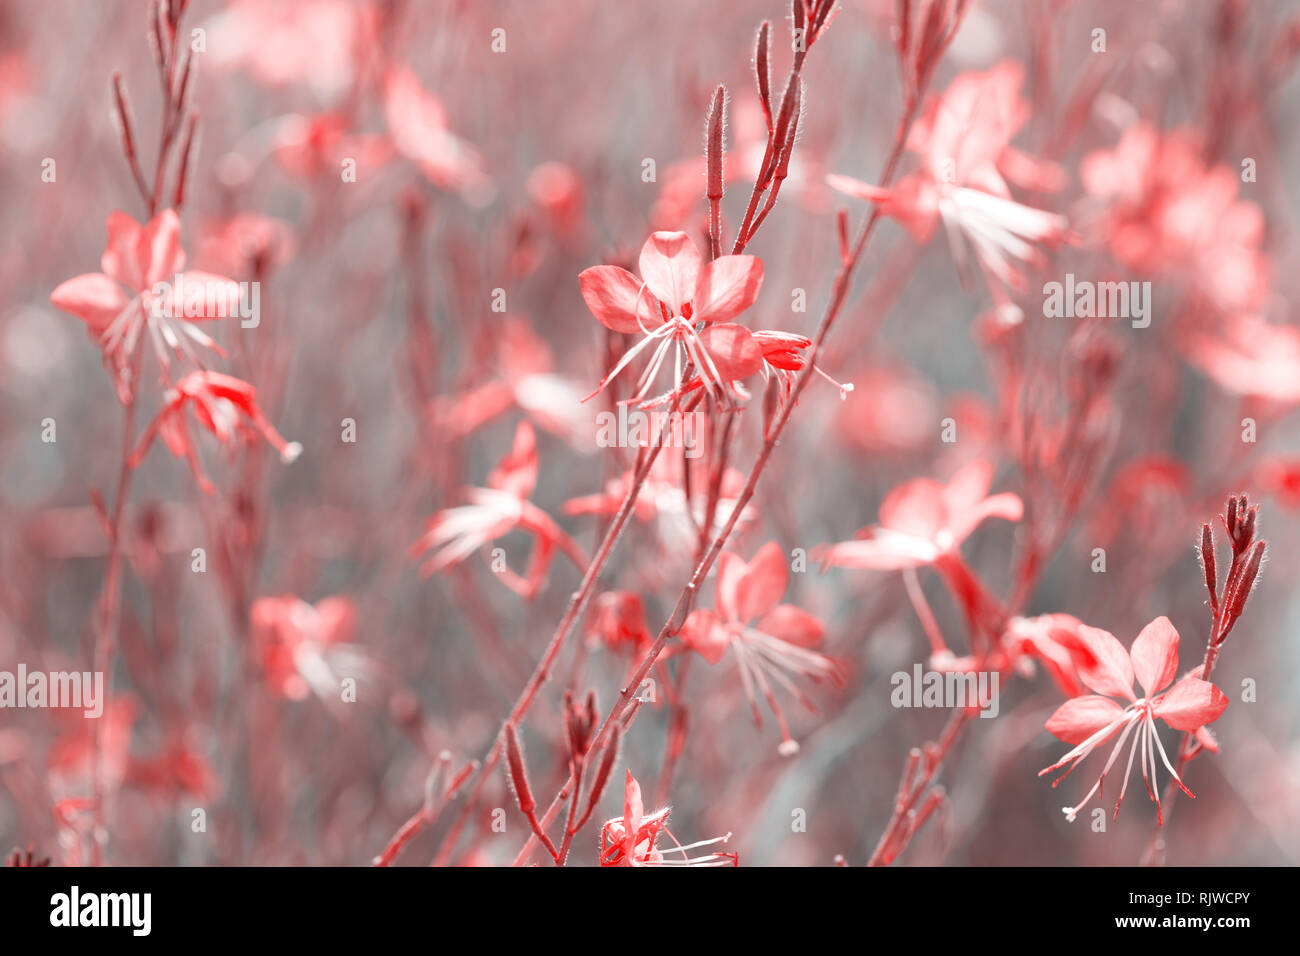 Small flowers of coral color   ( Siskiyou Pink Gaura)  in the sunlight at summer morning.  Toned image. Selective focus. - Stock Image